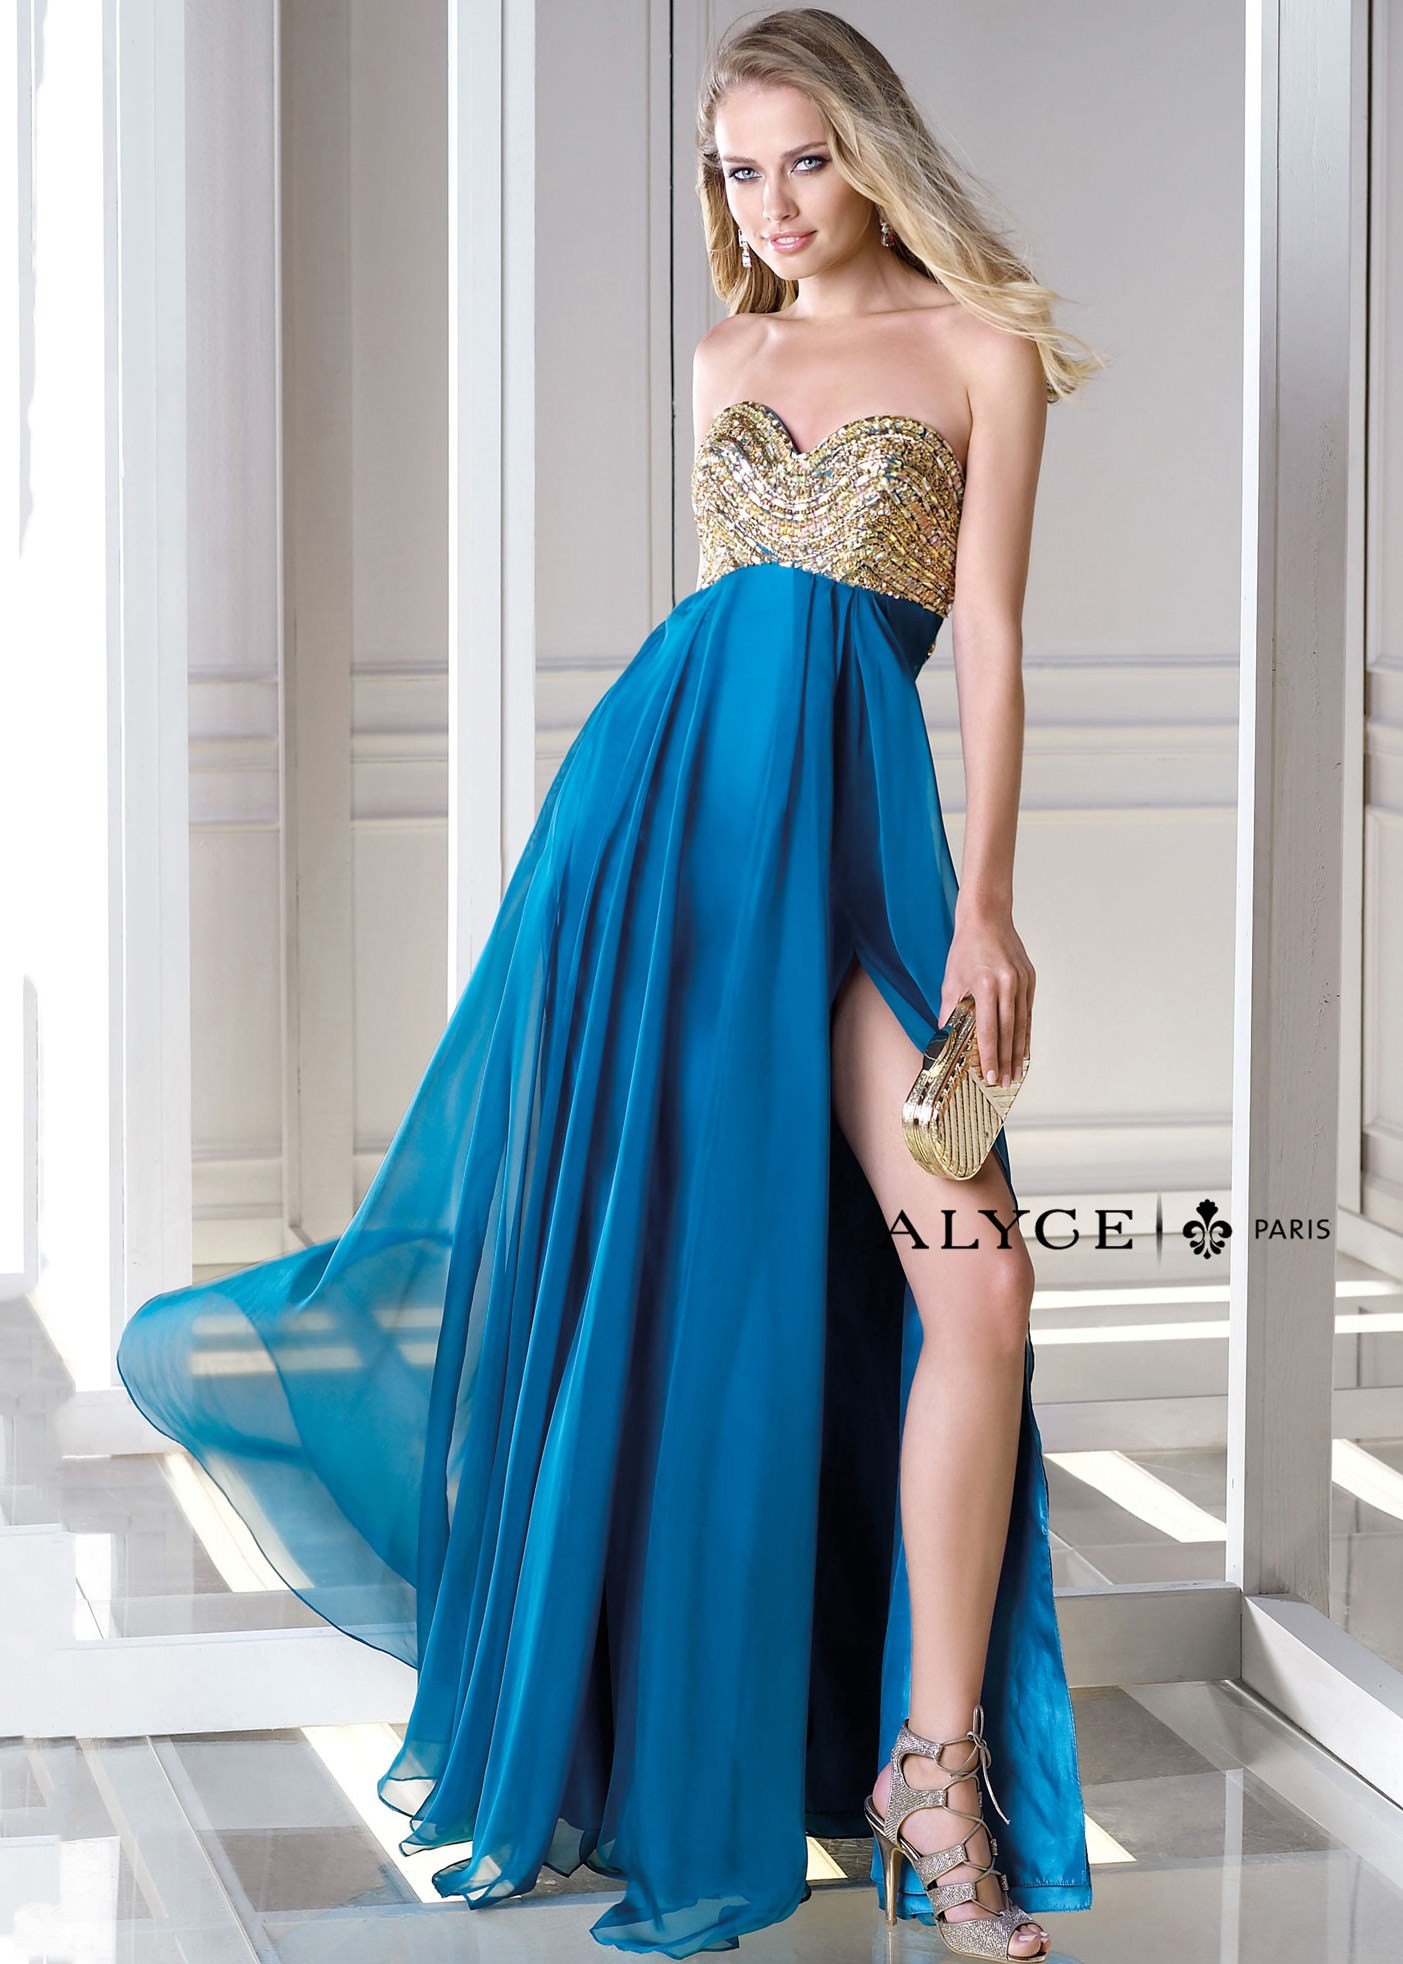 Alyce B'Dazzle 35694 Strapless Dress